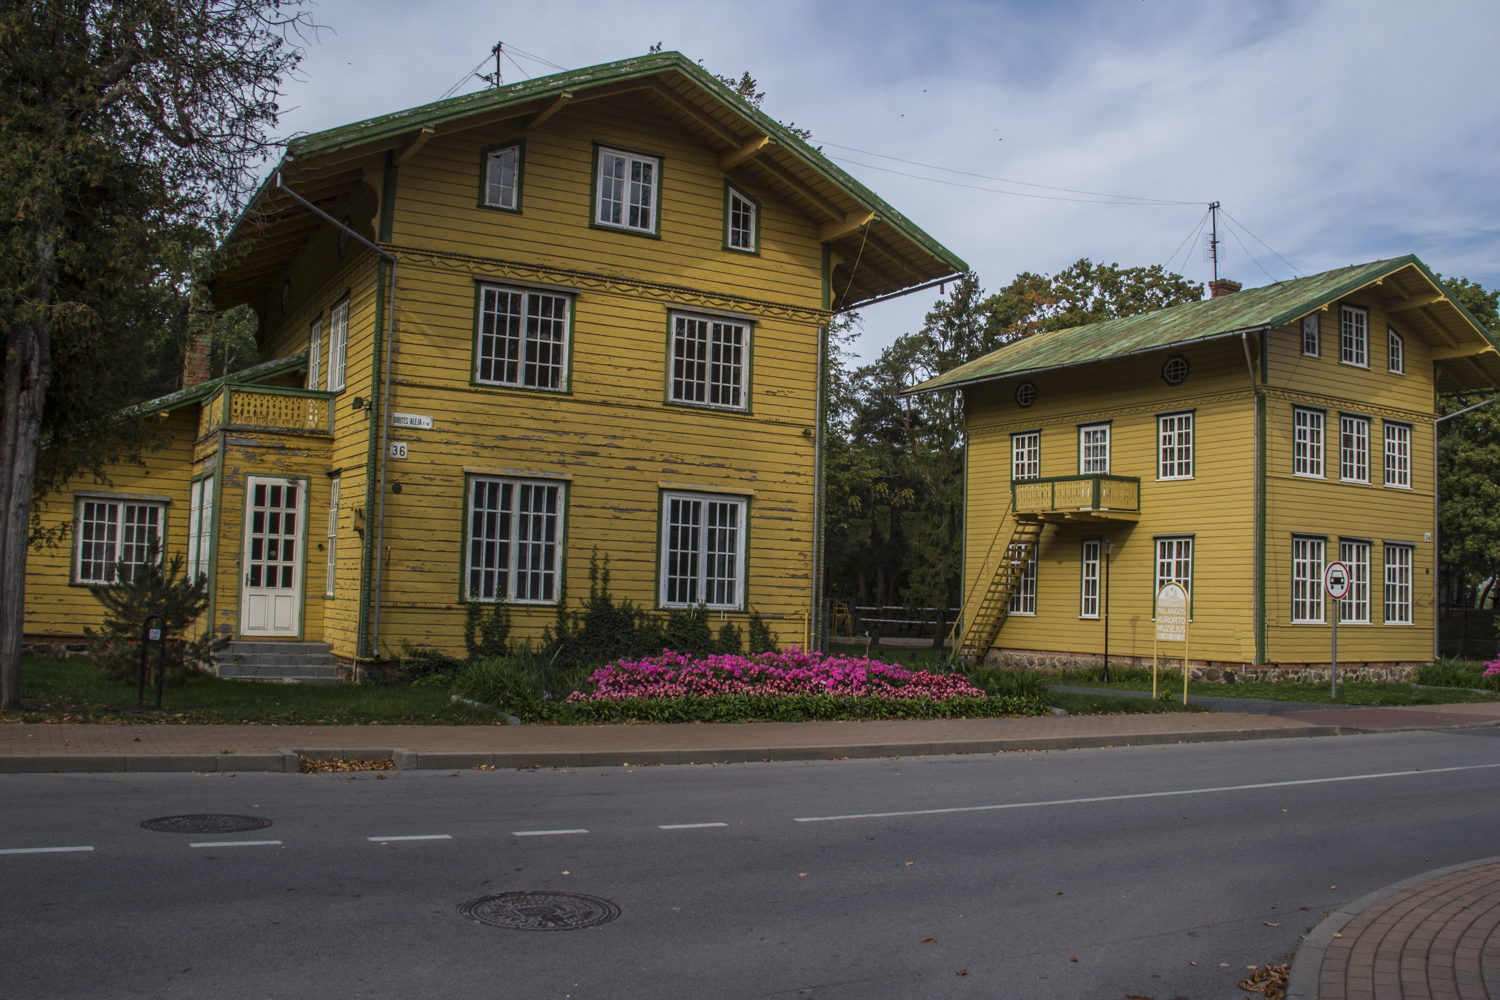 Villa Romeo and Villa Juliet in Palanga, Lithuania 0110